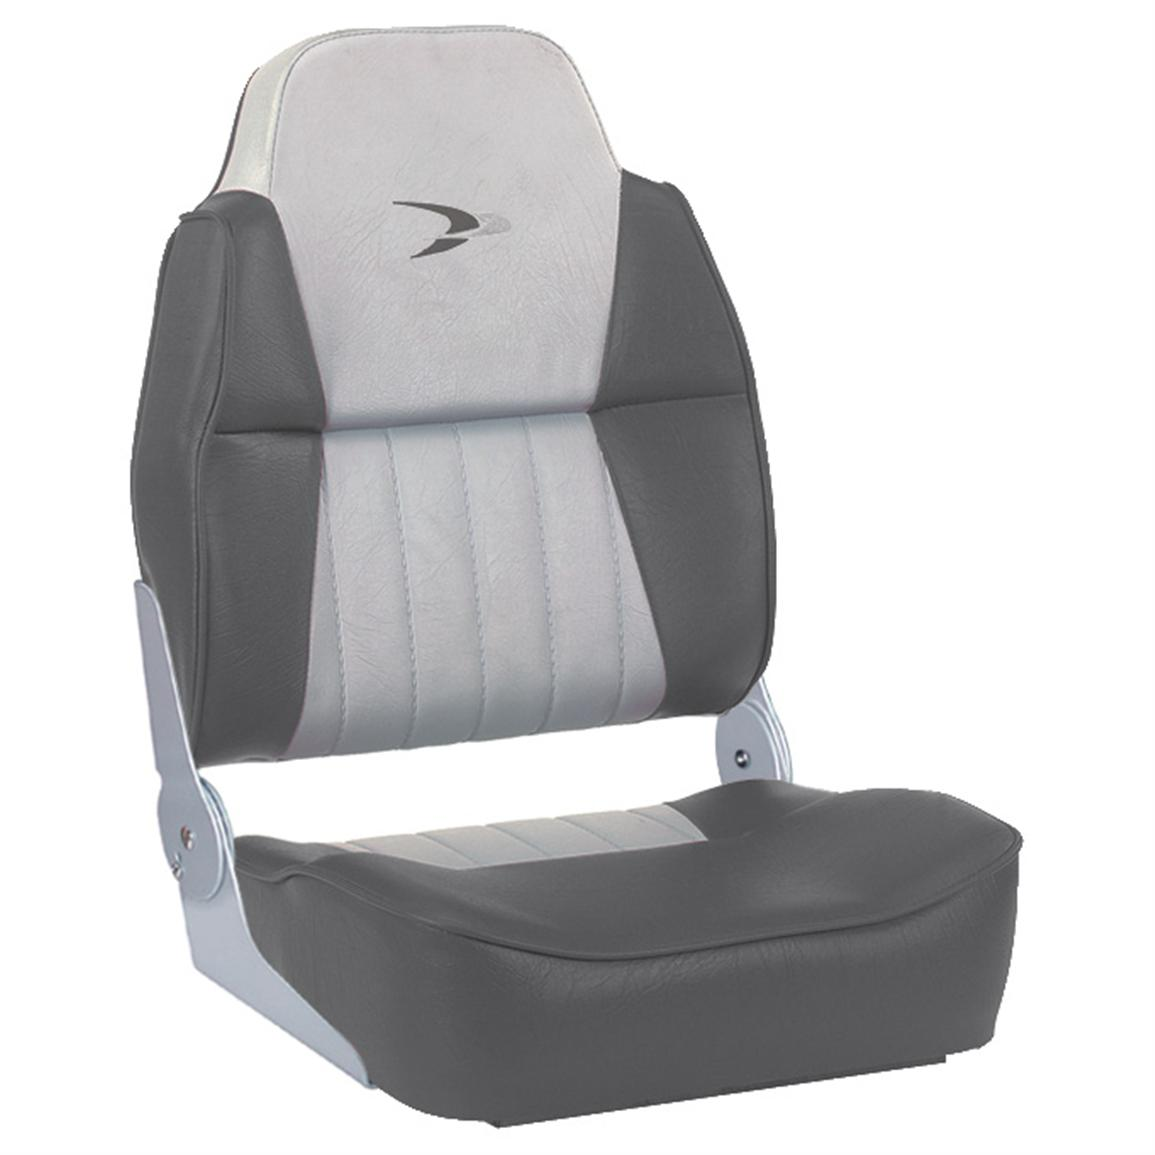 Wise® Embroidered Logo Hi-back Fishing Boat Seat, Grey / Charcoal